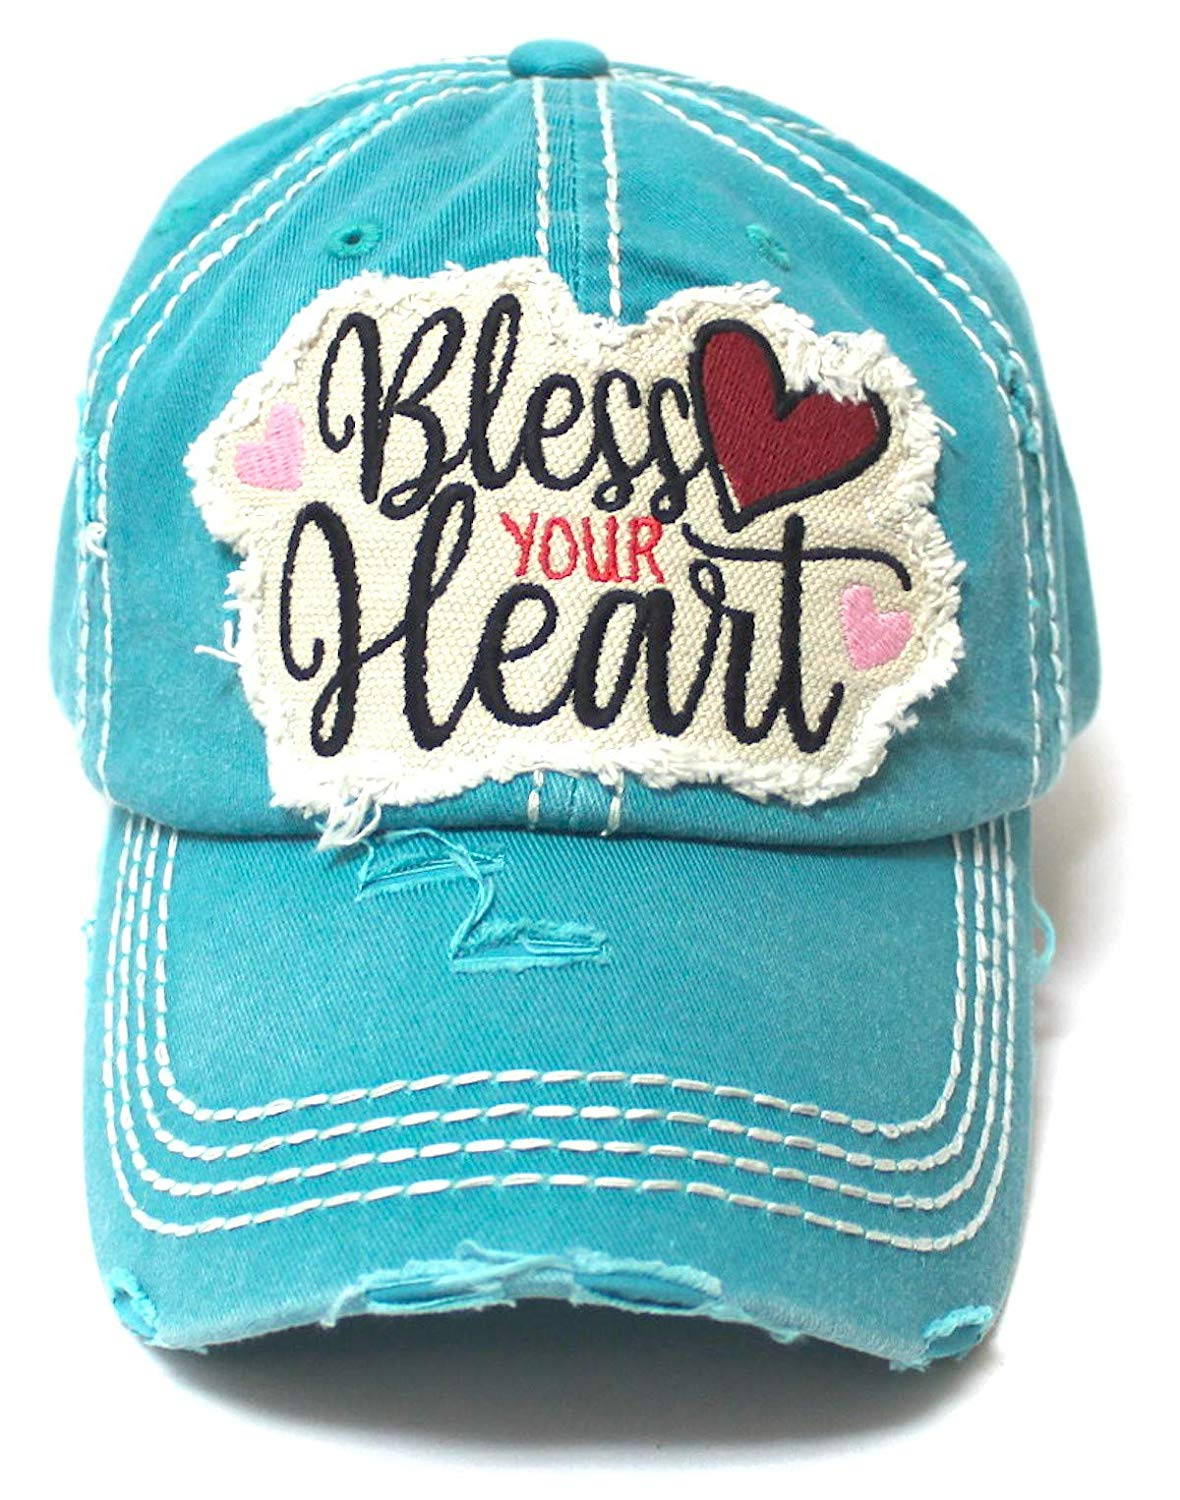 Women's Ballcap Bless Your Heart Monogram Patch Embroidery Hat w/Heart Shape Decoration, Turquoise - Caps 'N Vintage